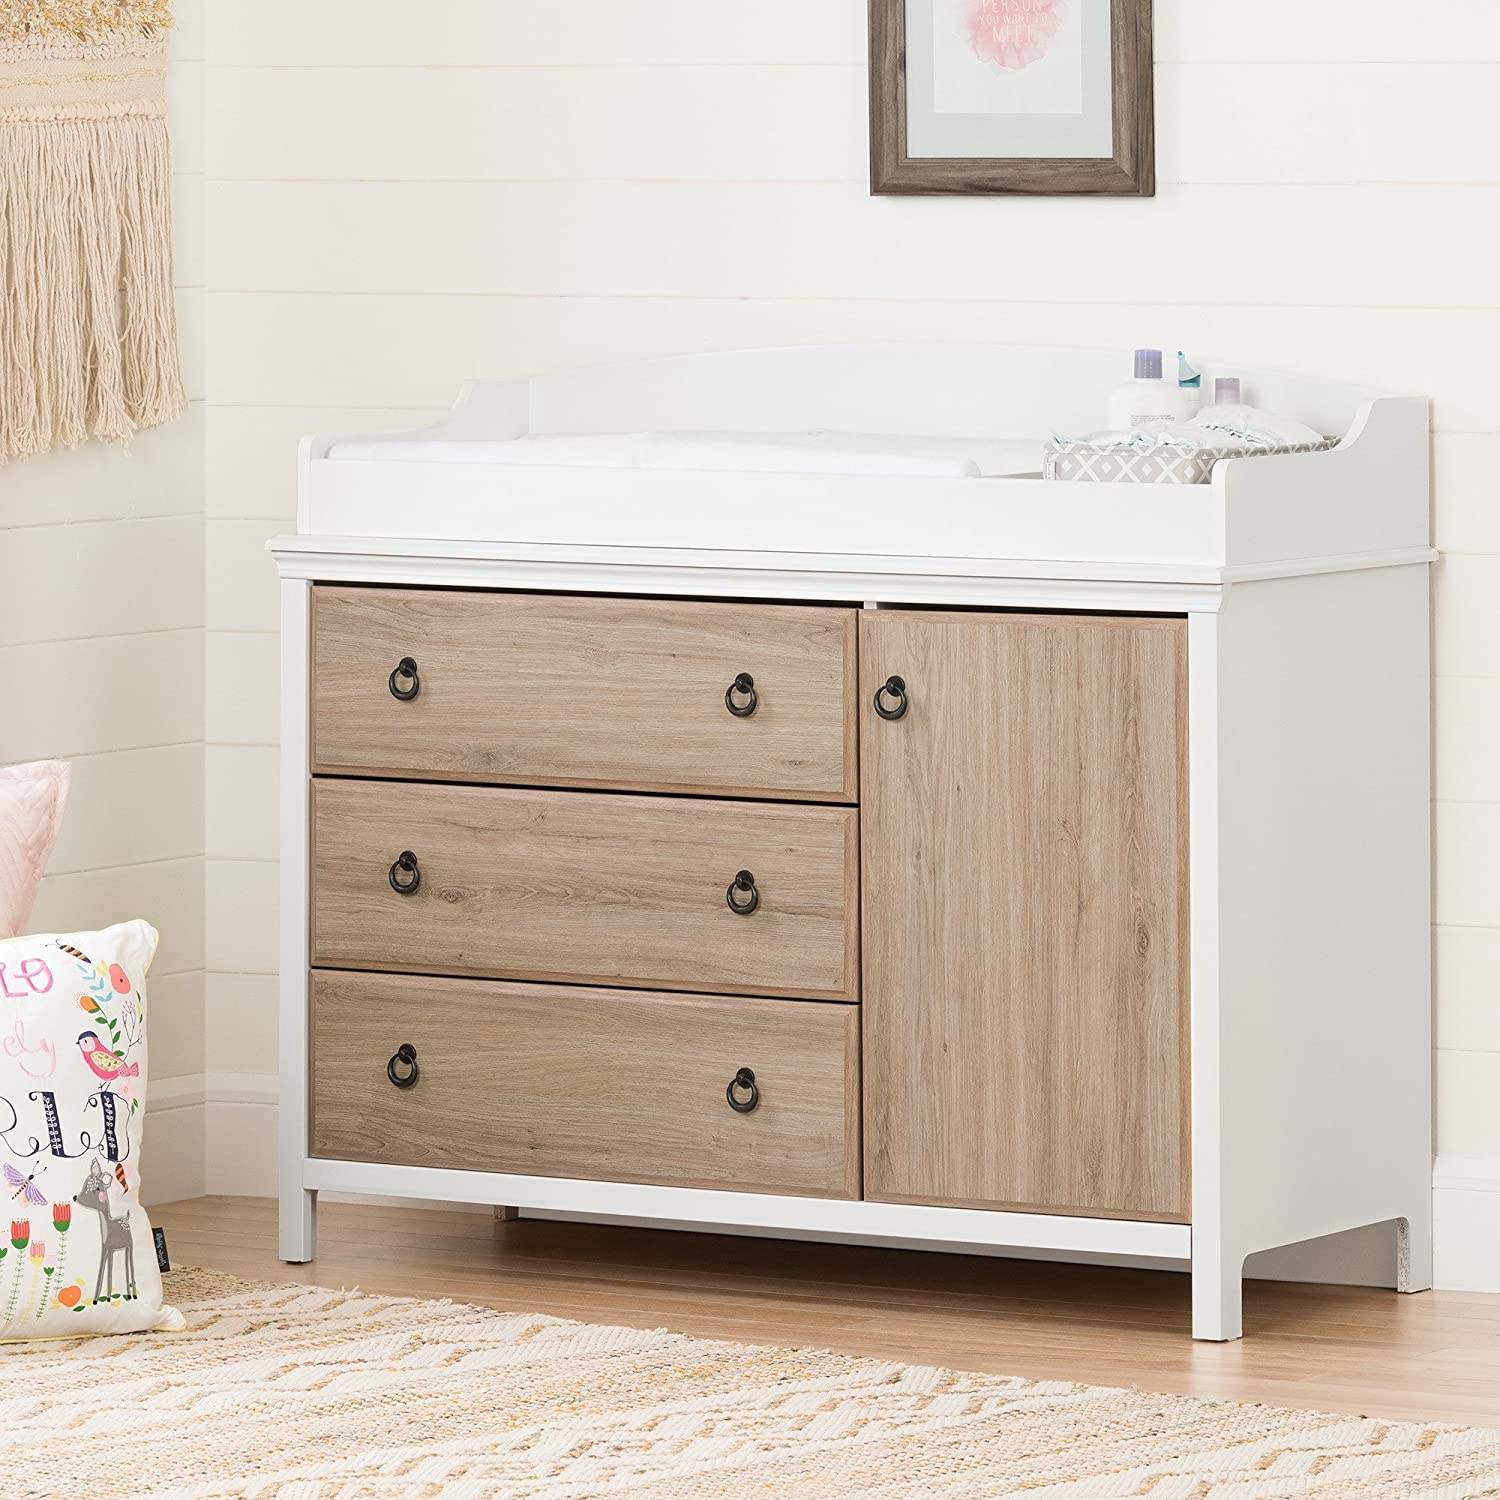 Shop South Shore Catimini Long Changing Table with Removable Changing Station with Drawers from Amazon on Openhaus